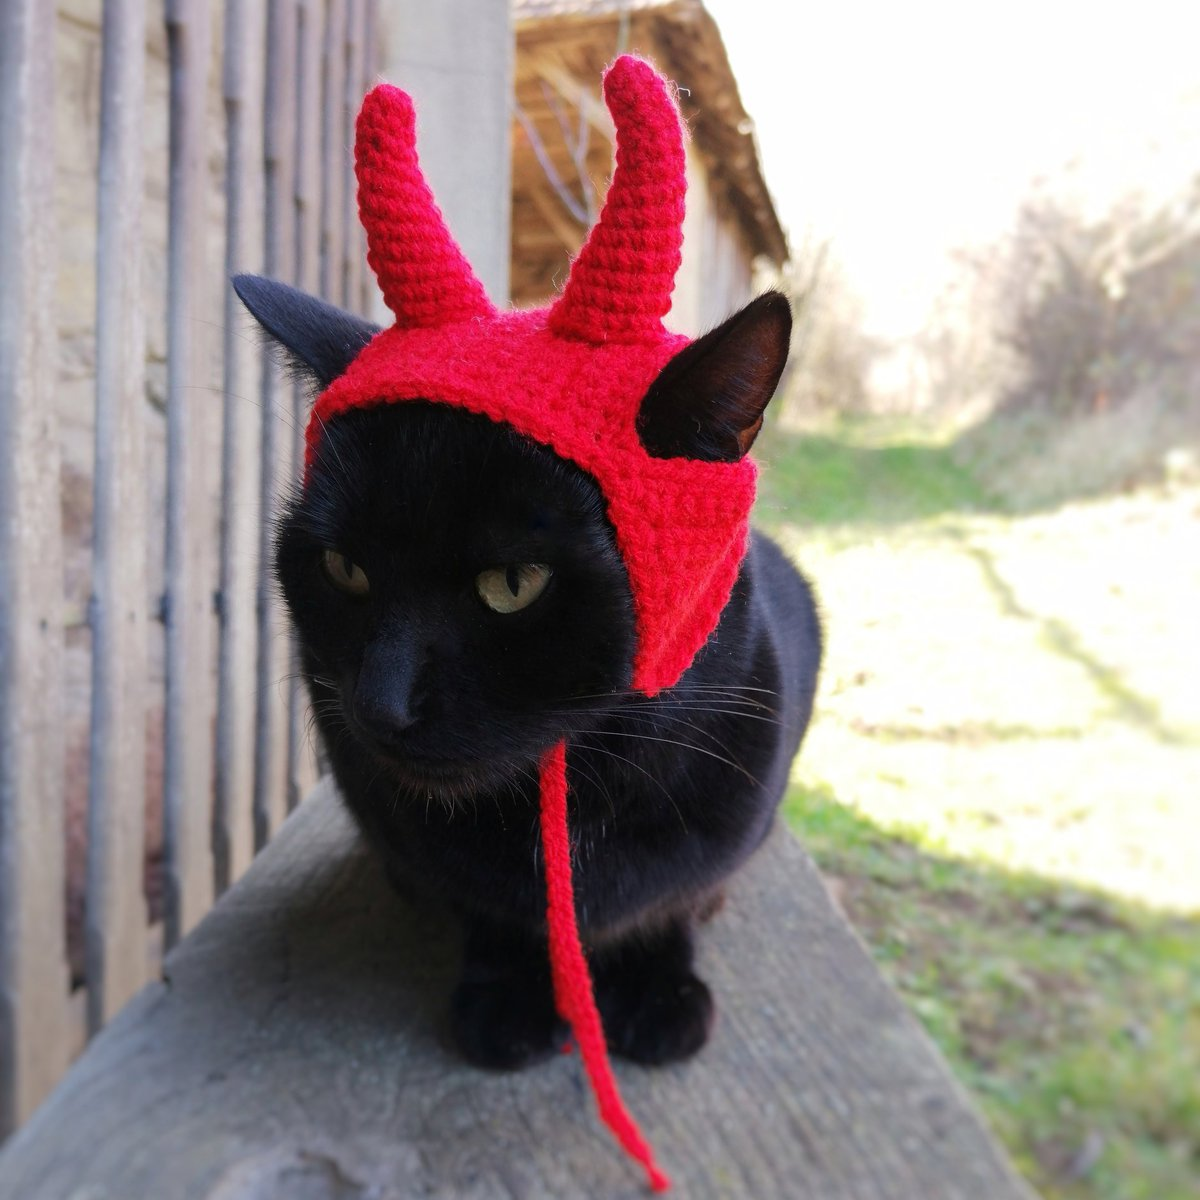 Costume for your cat 🐱 Check out:  🐱🐱🐱🐱🐱🐱🐱🐱🐱 #cats #CatsOfTwitter #pet #dogsoftwitter #nationaldressupyourpetday #TikTok #gatos #PetsAreTheBest #handmade #EtsySocial #etsyfinds #etsy #crafts #HandmadeHour #handmadewithlove #cool